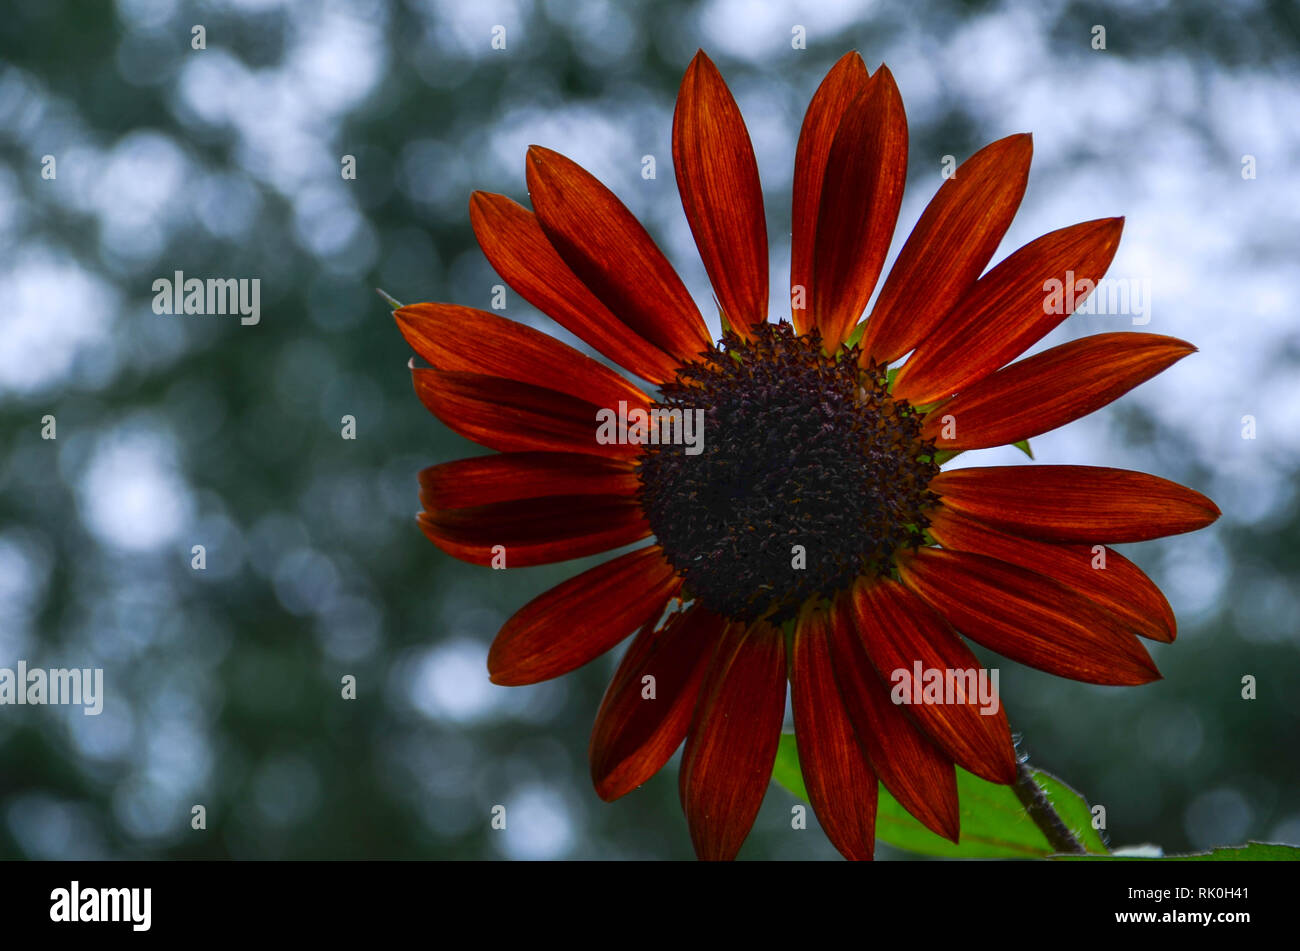 One reddish sunflower with blurred background - Stock Image